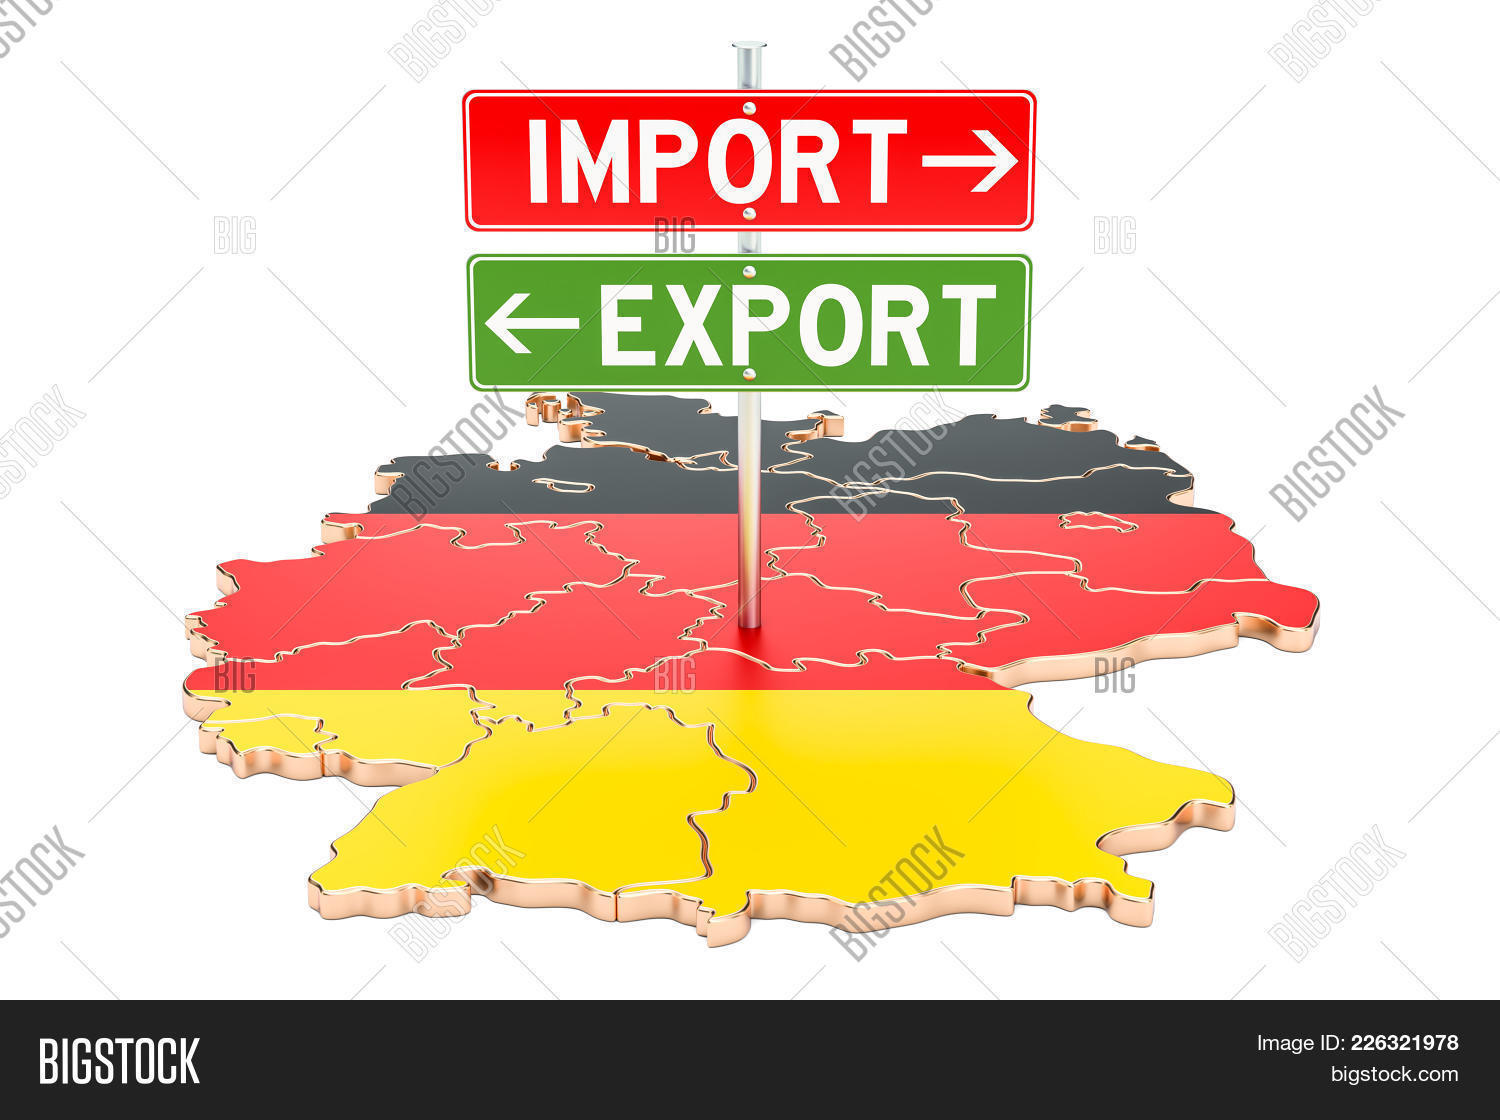 Import And Export In Germany Powerpoint Template Import And Export